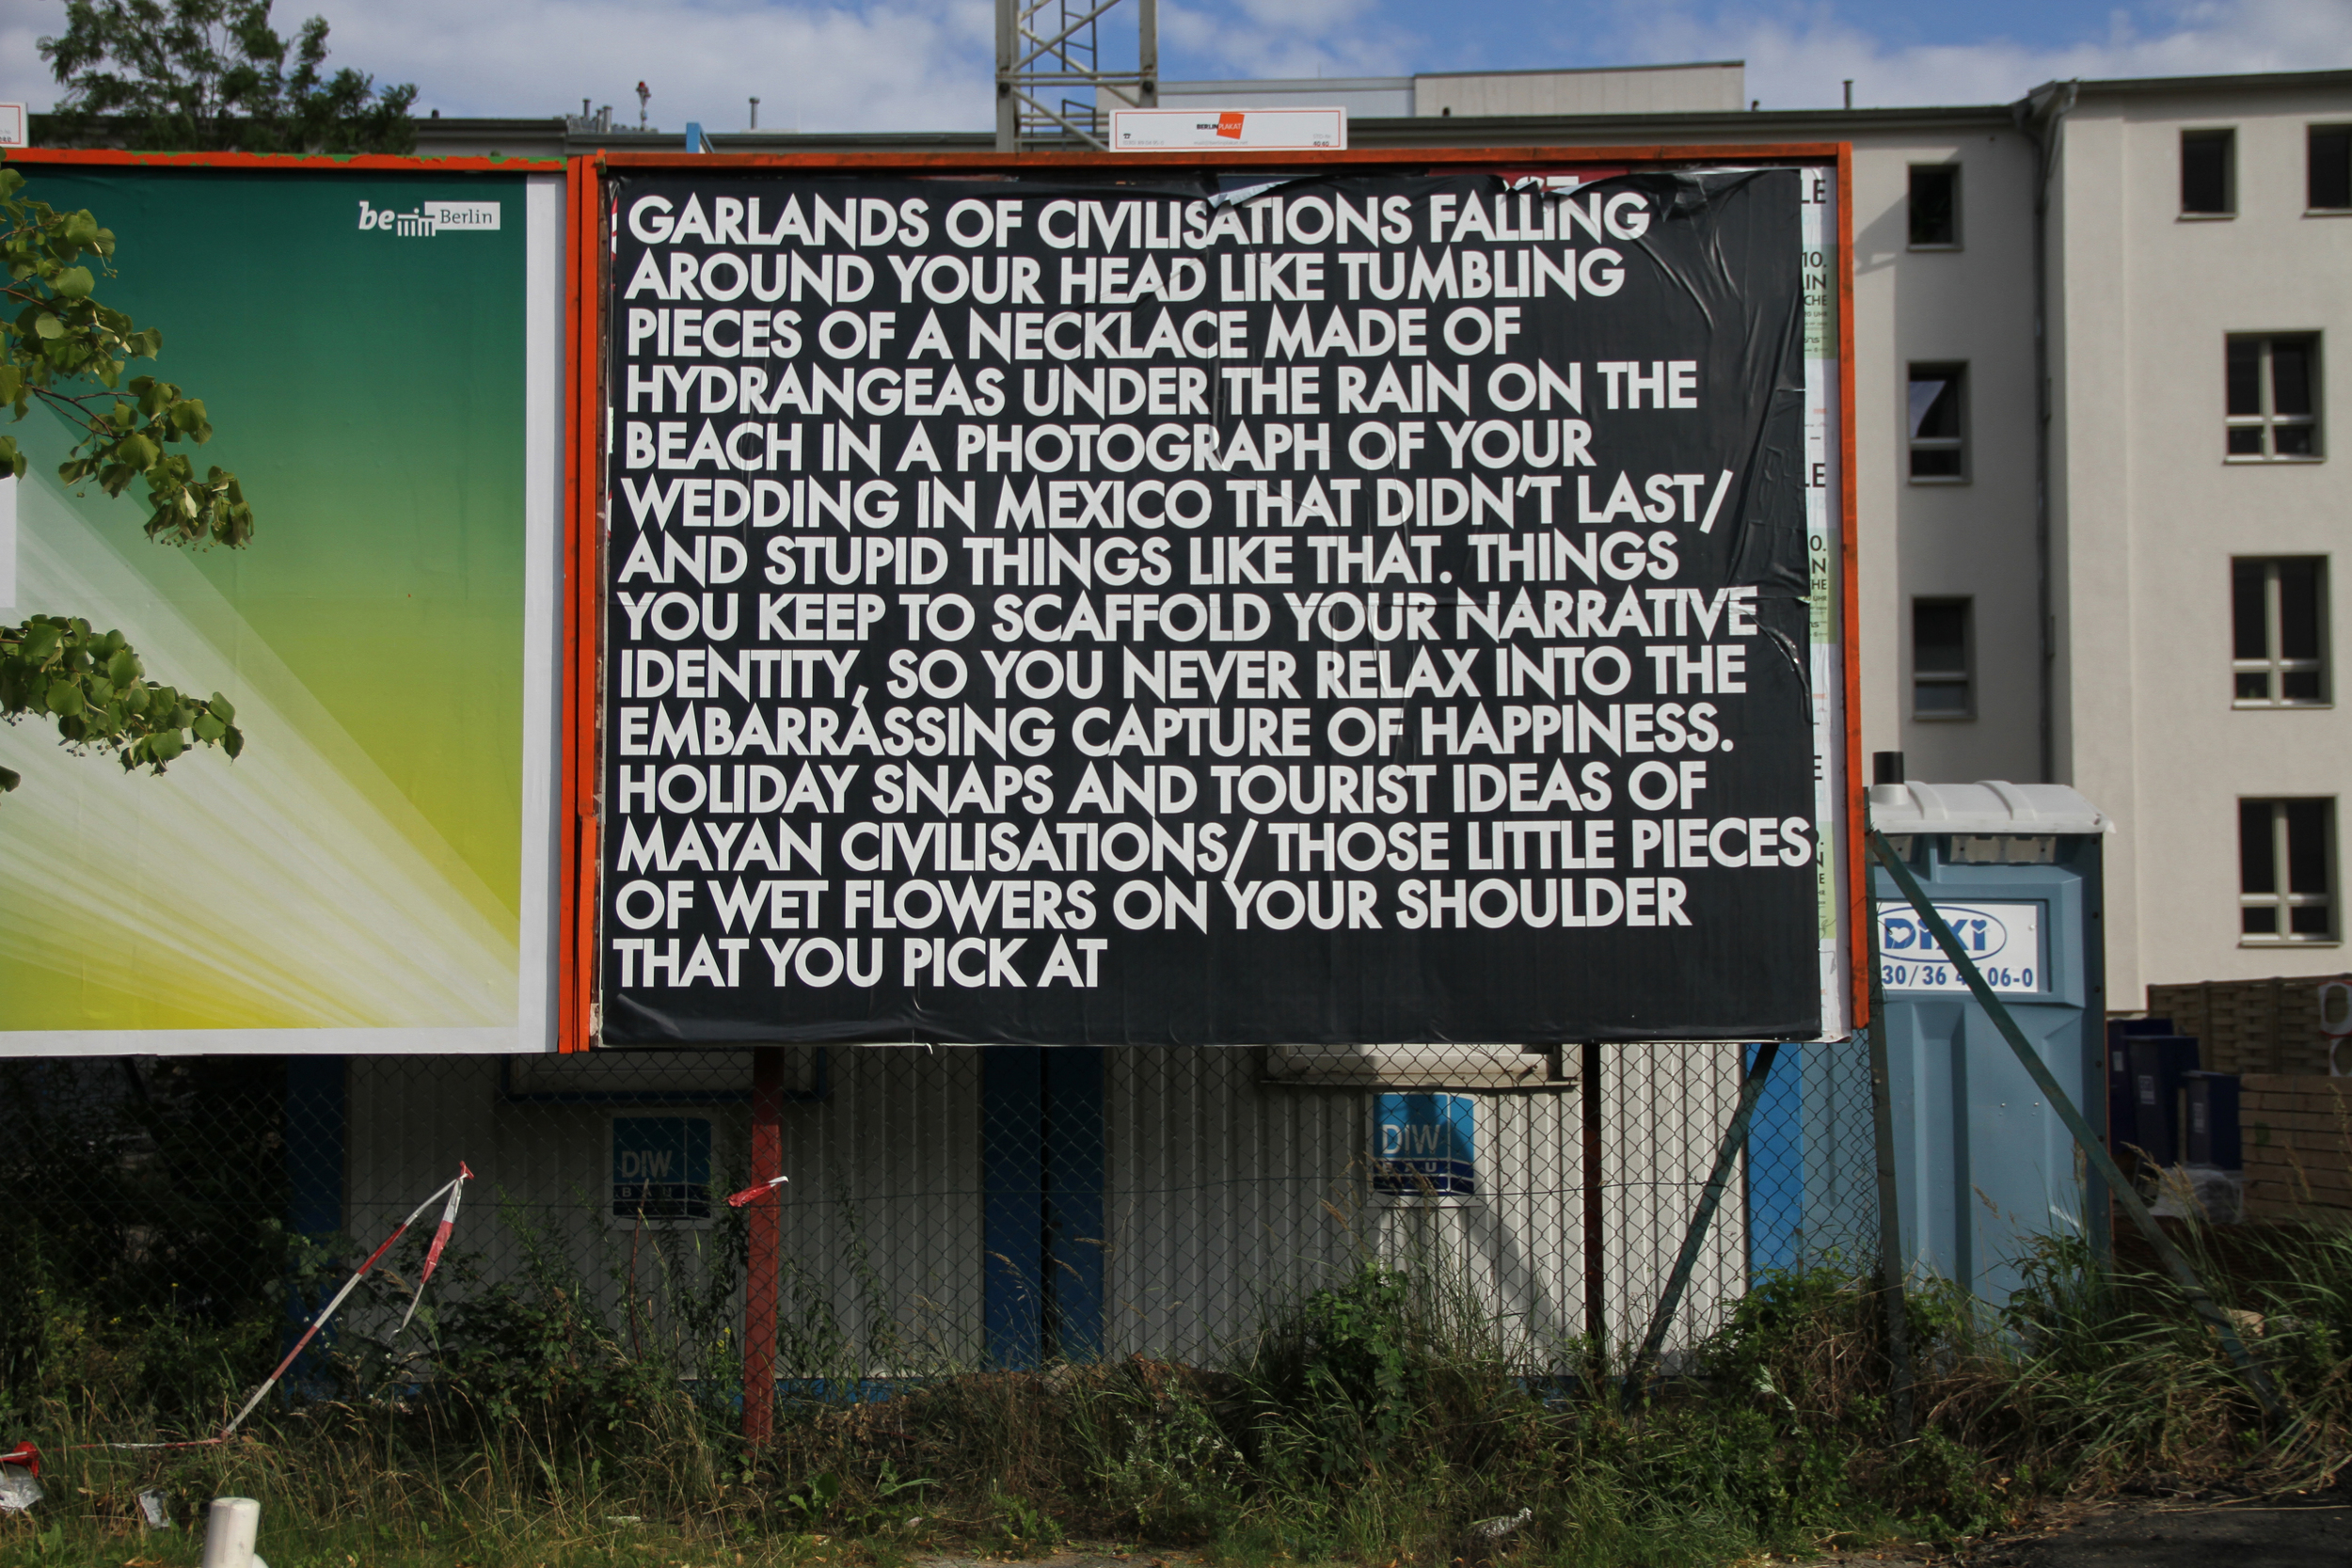 BERLIN CITY BILLBOARD 5.jpg